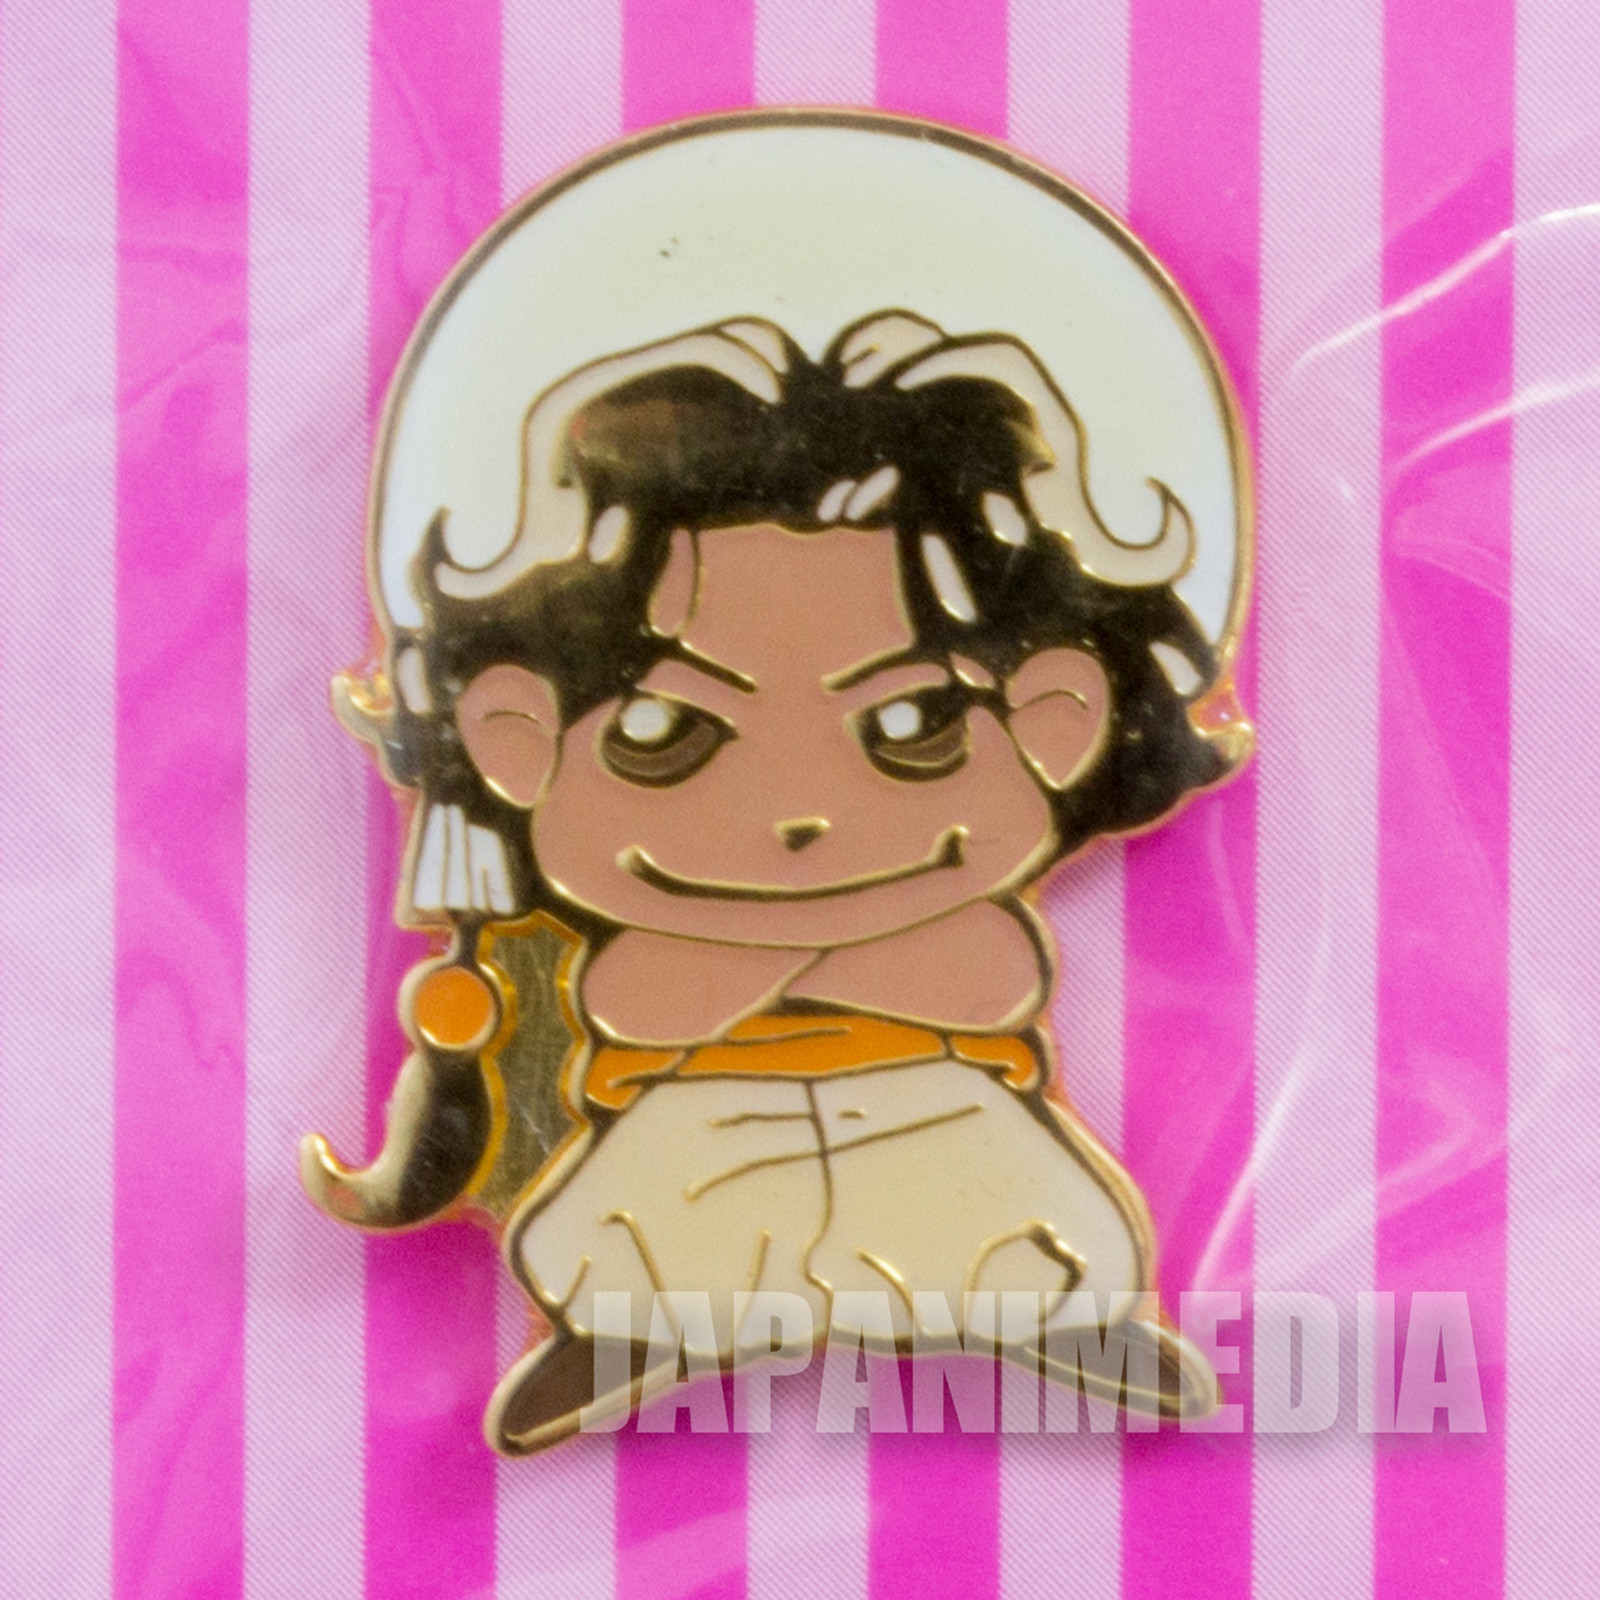 RARE!! Koucha Ouji (Tea Prince) Assam PINS JAPAN MANGA